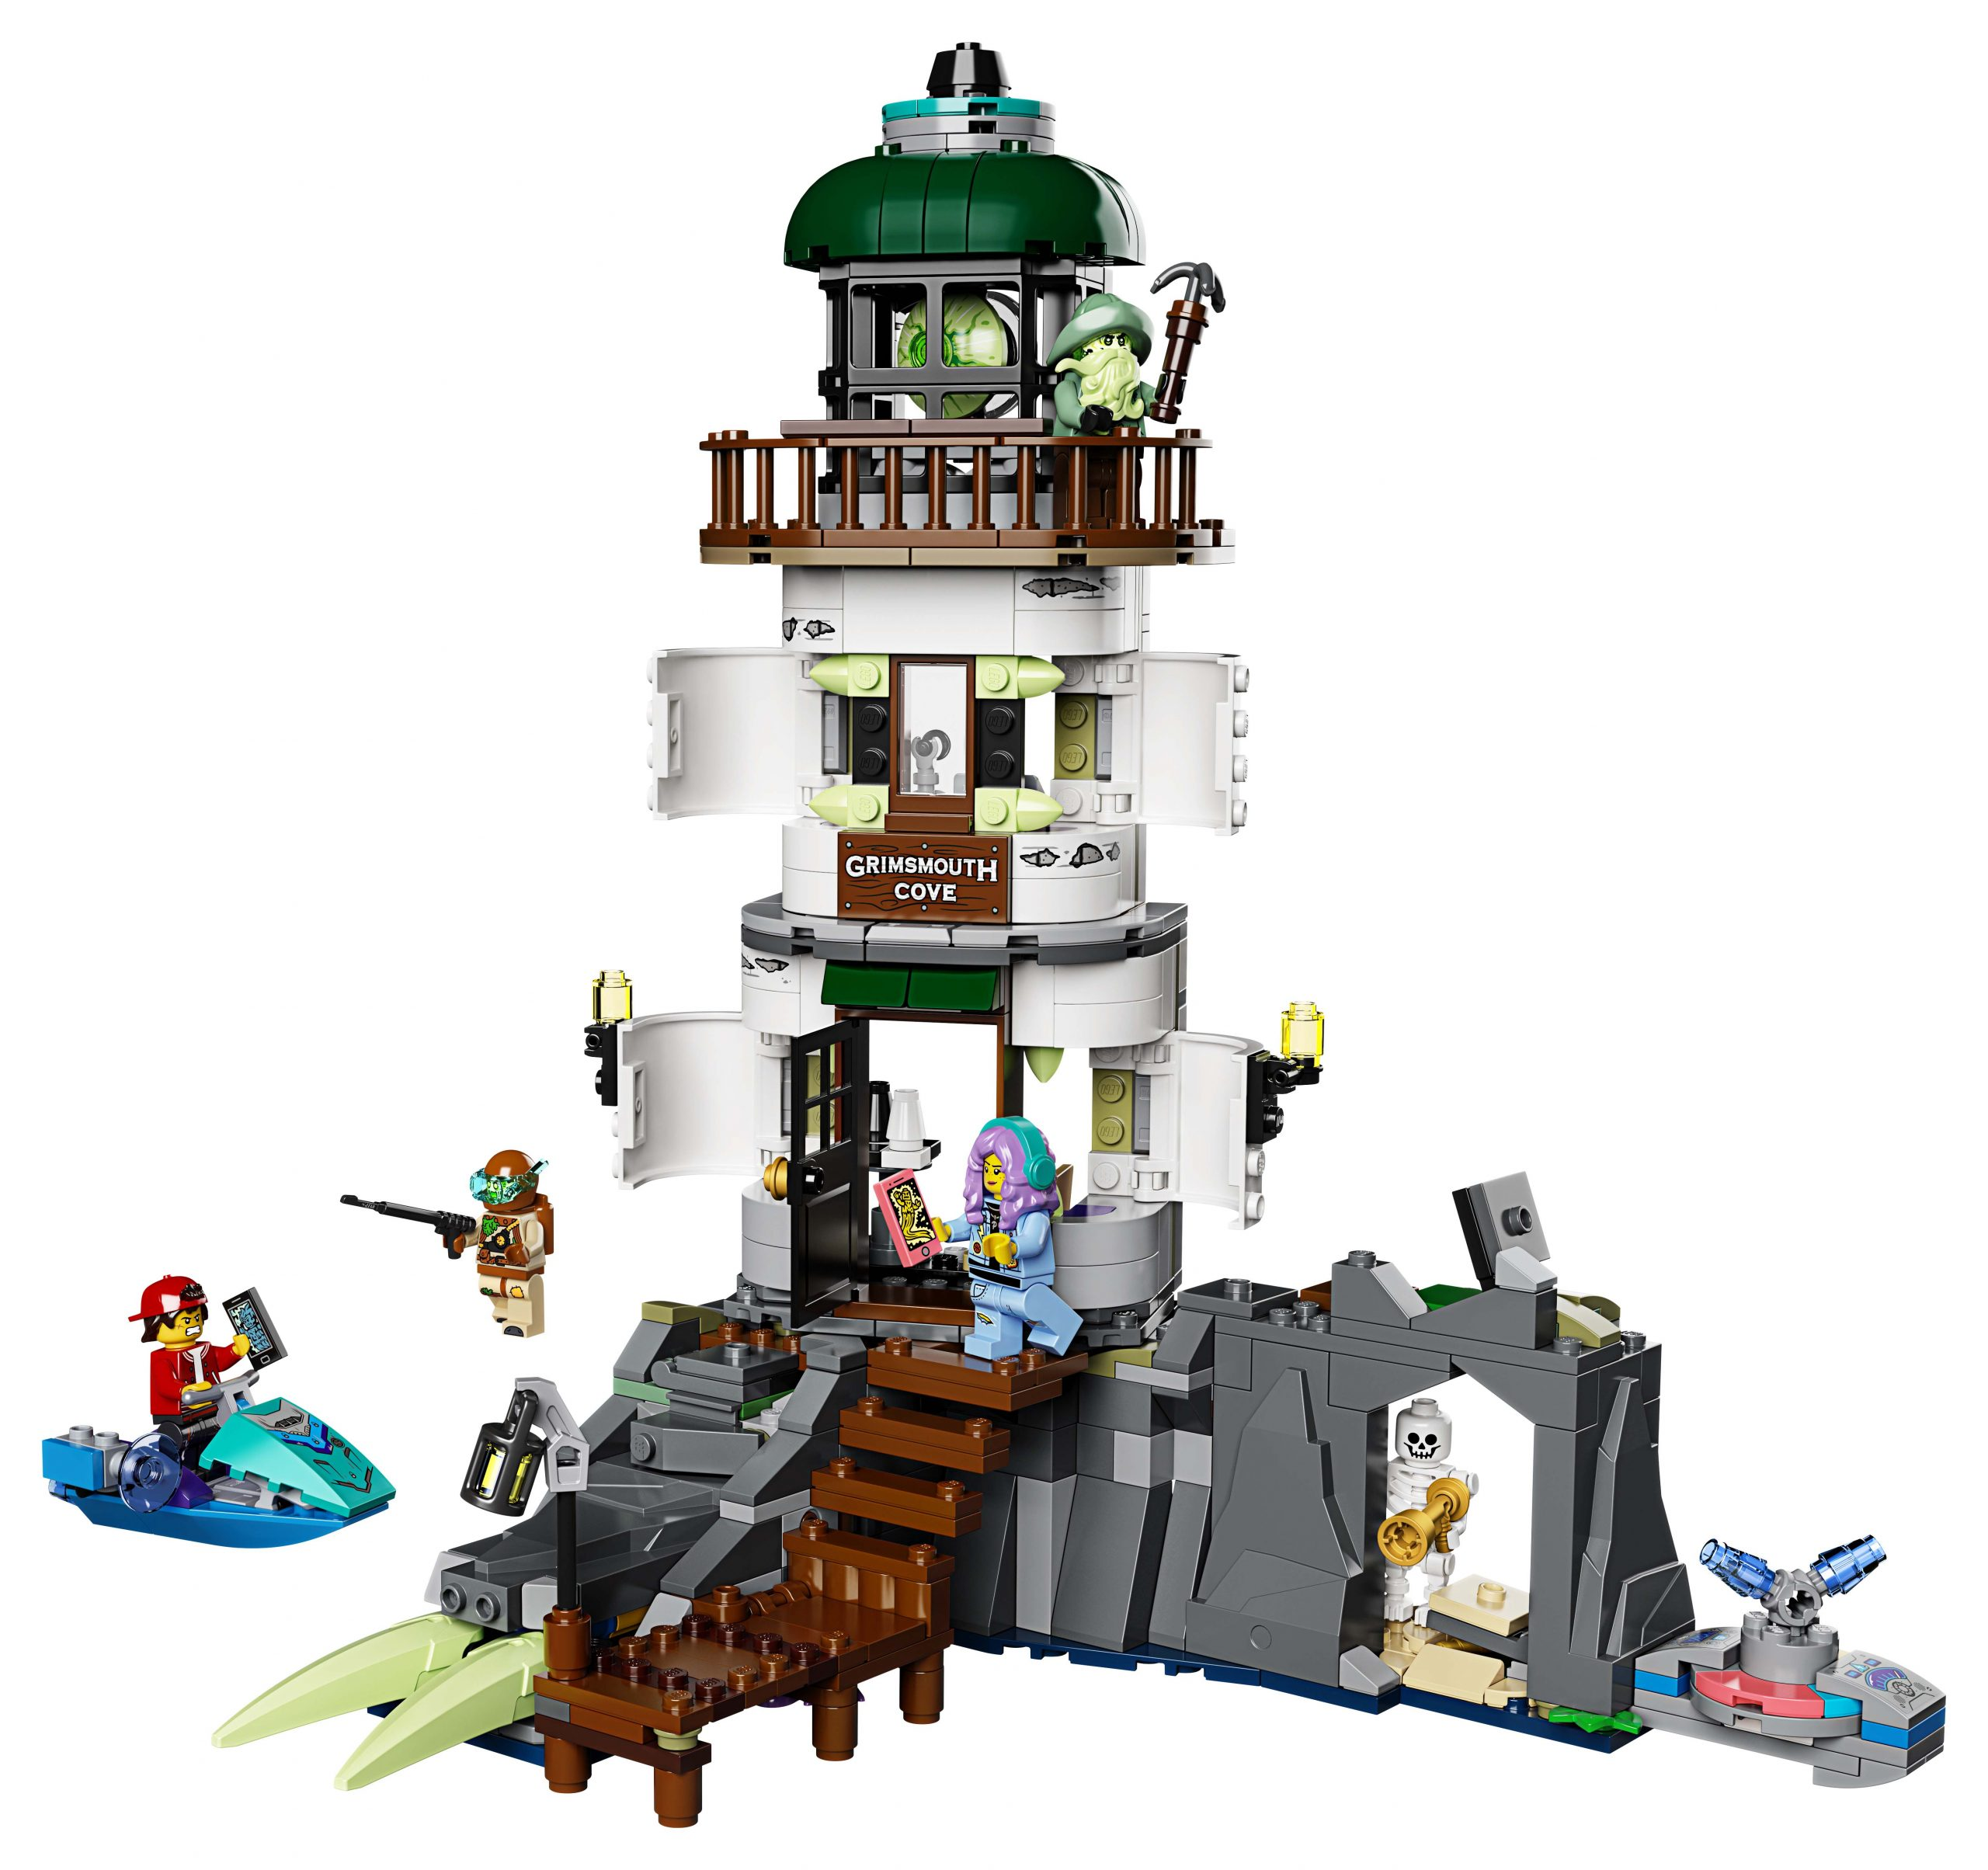 Lego Games 2020.Lego Hidden Side 2020 Sets Officially Revealed The Brick Fan